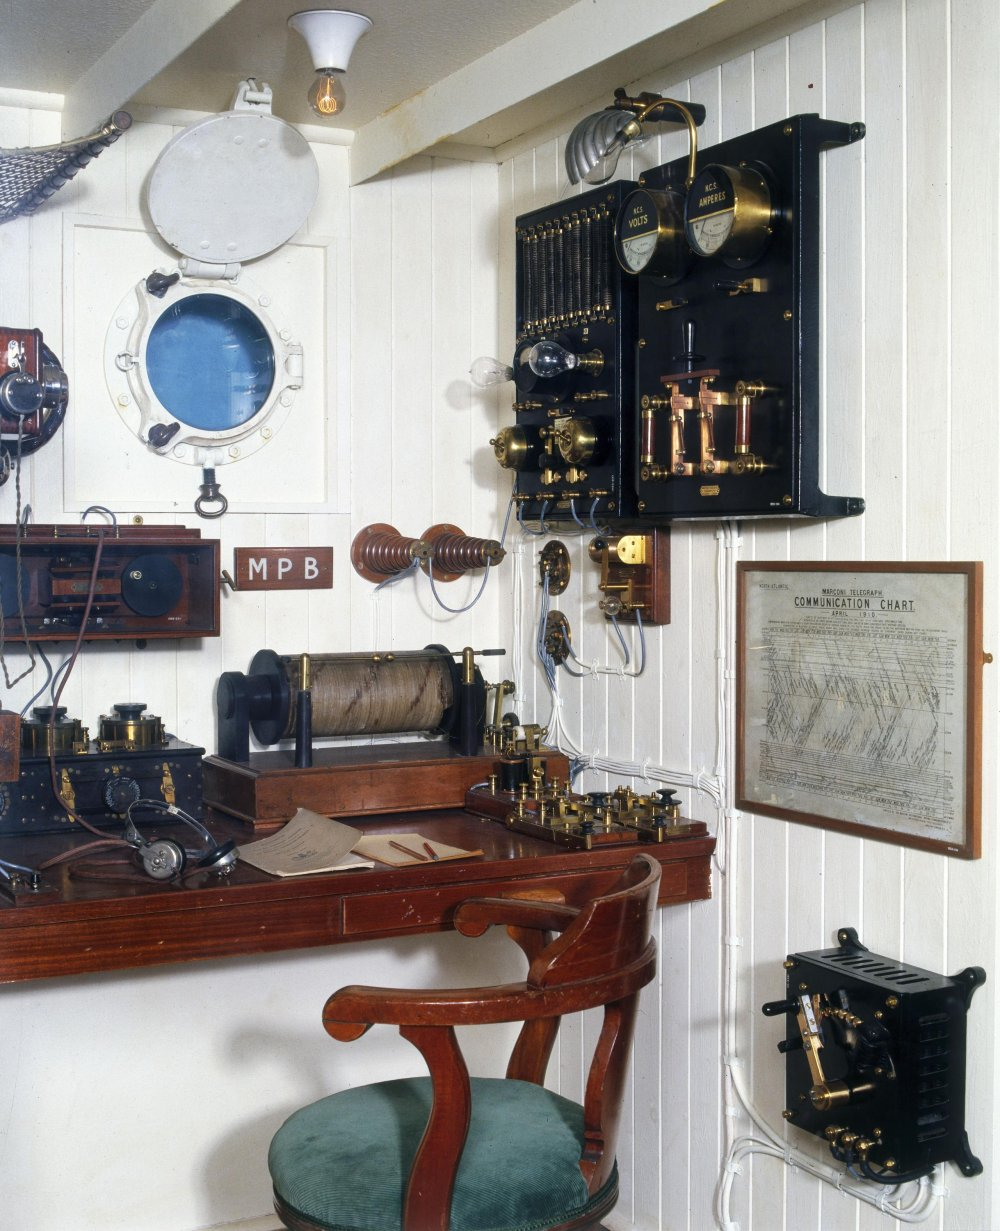 Reconstruction of a ship's radio room from c.1910, showing telegraph equipment